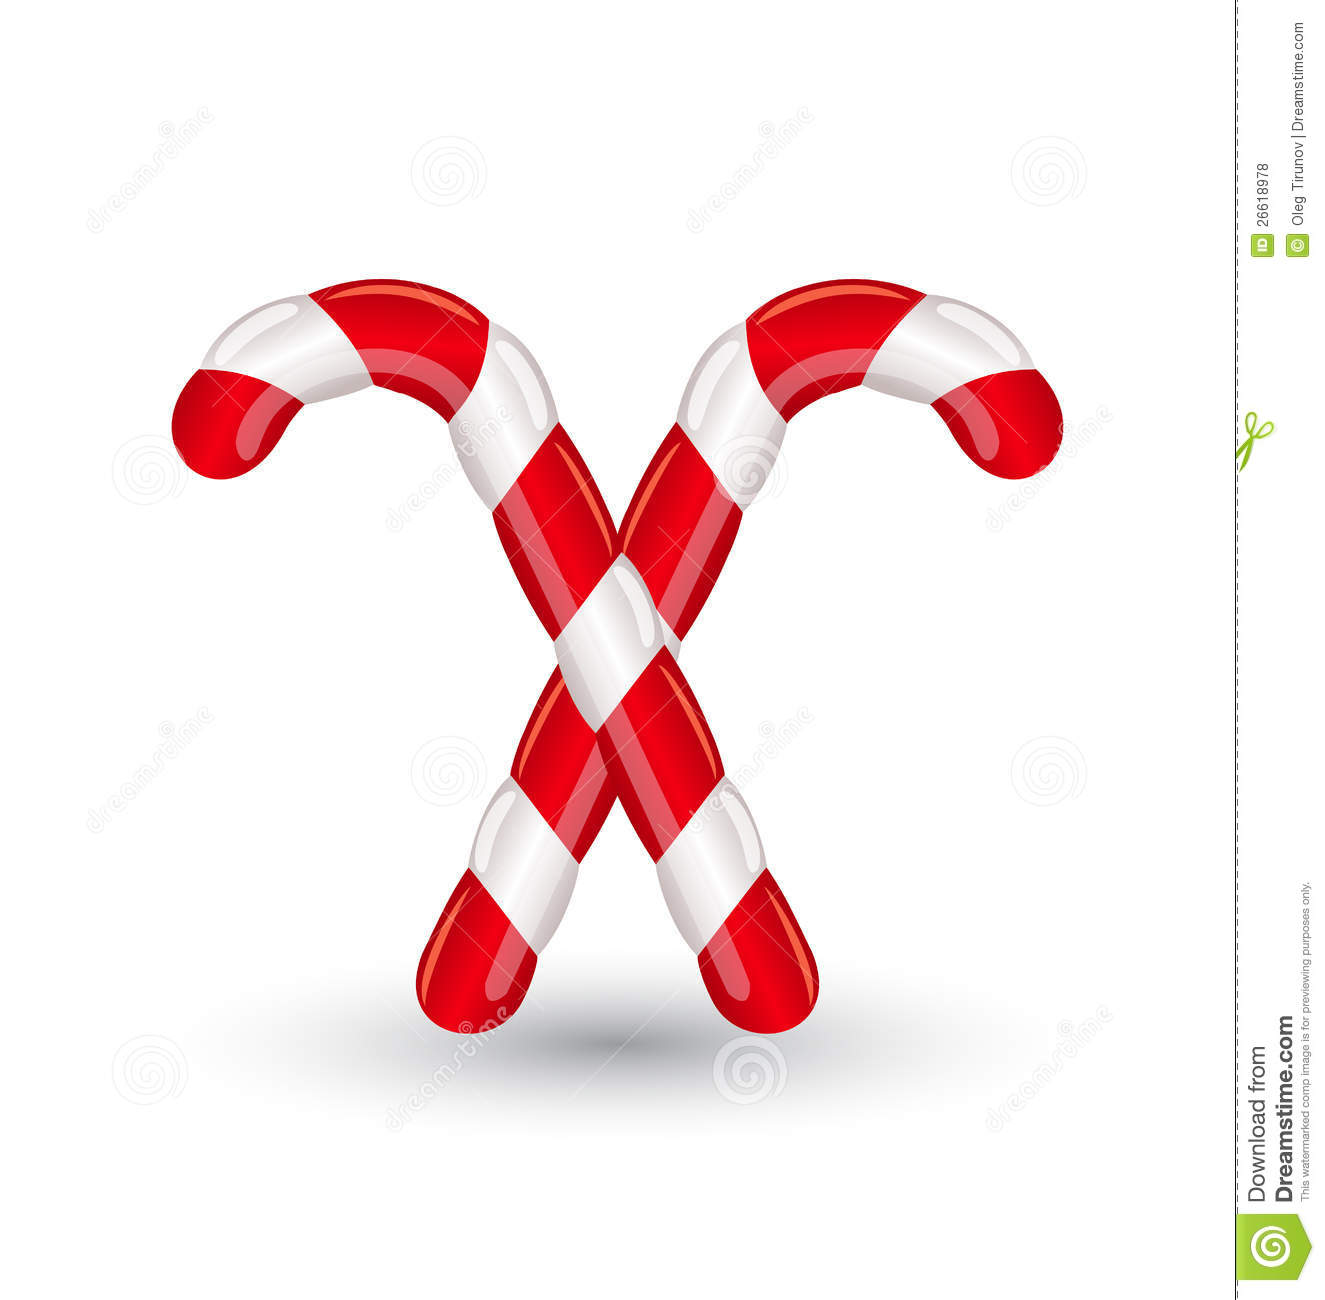 Candy Canes Christmas Christmas Candy Cane